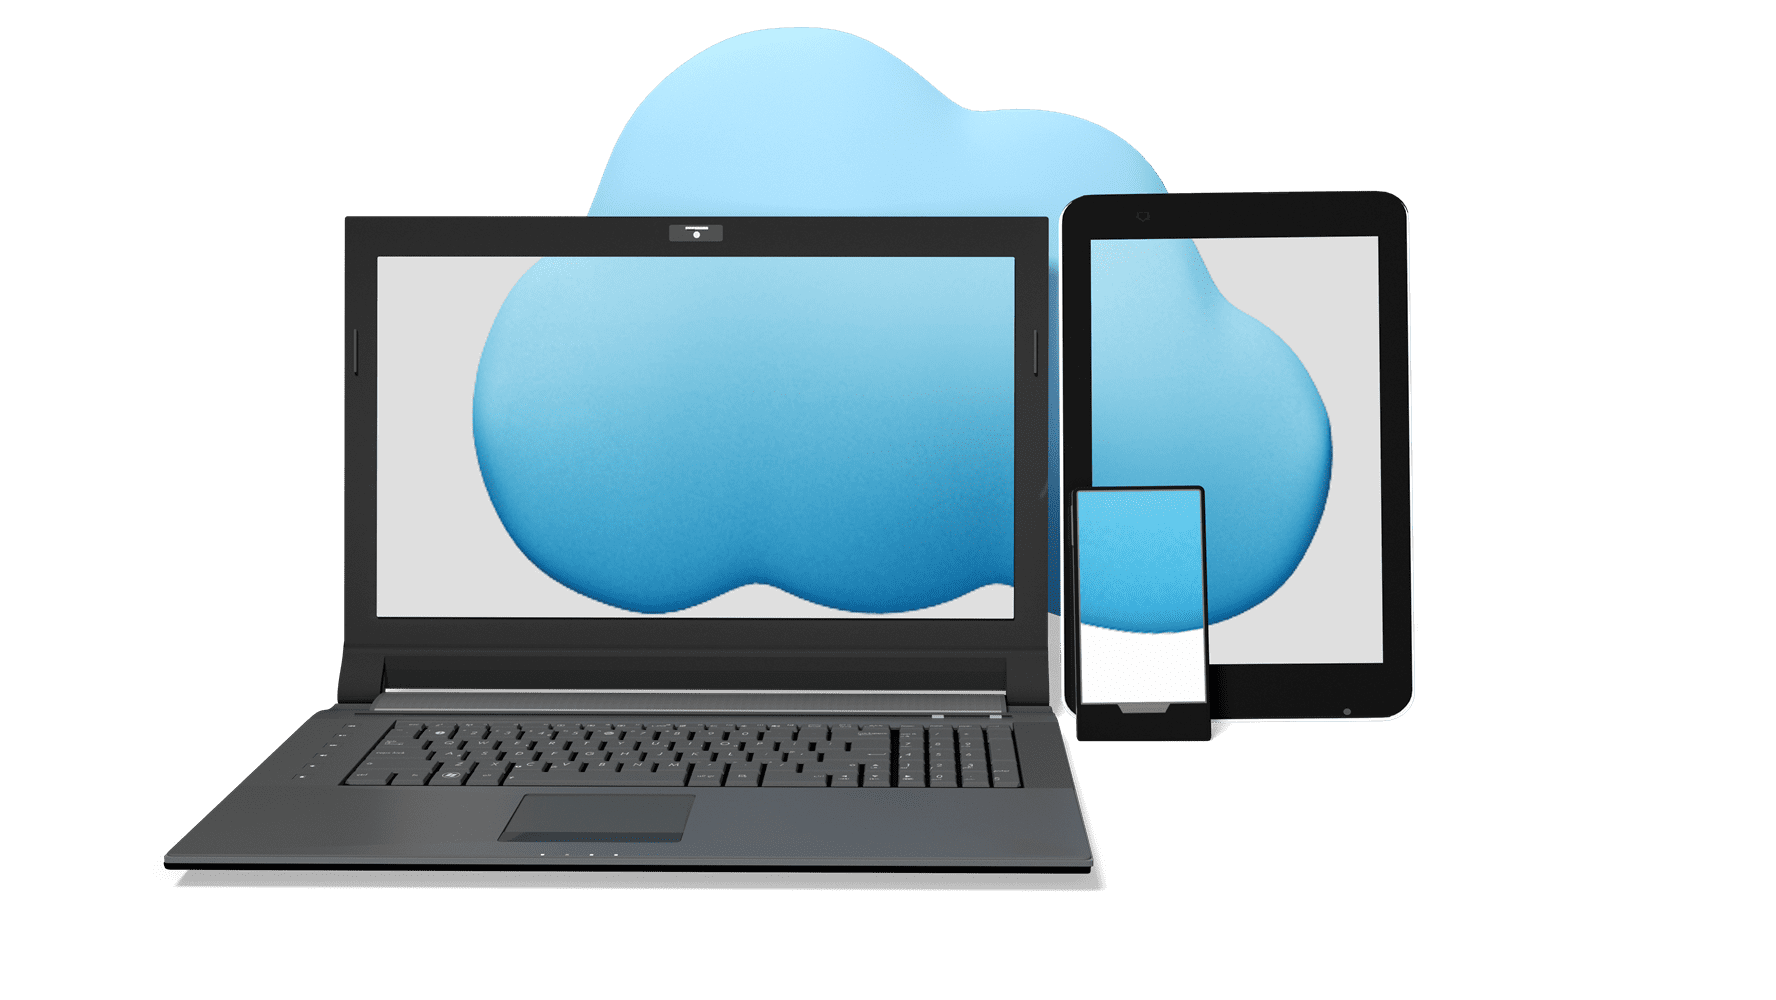 Graphic of a laptop, table and phone with a single cloud covering all screens